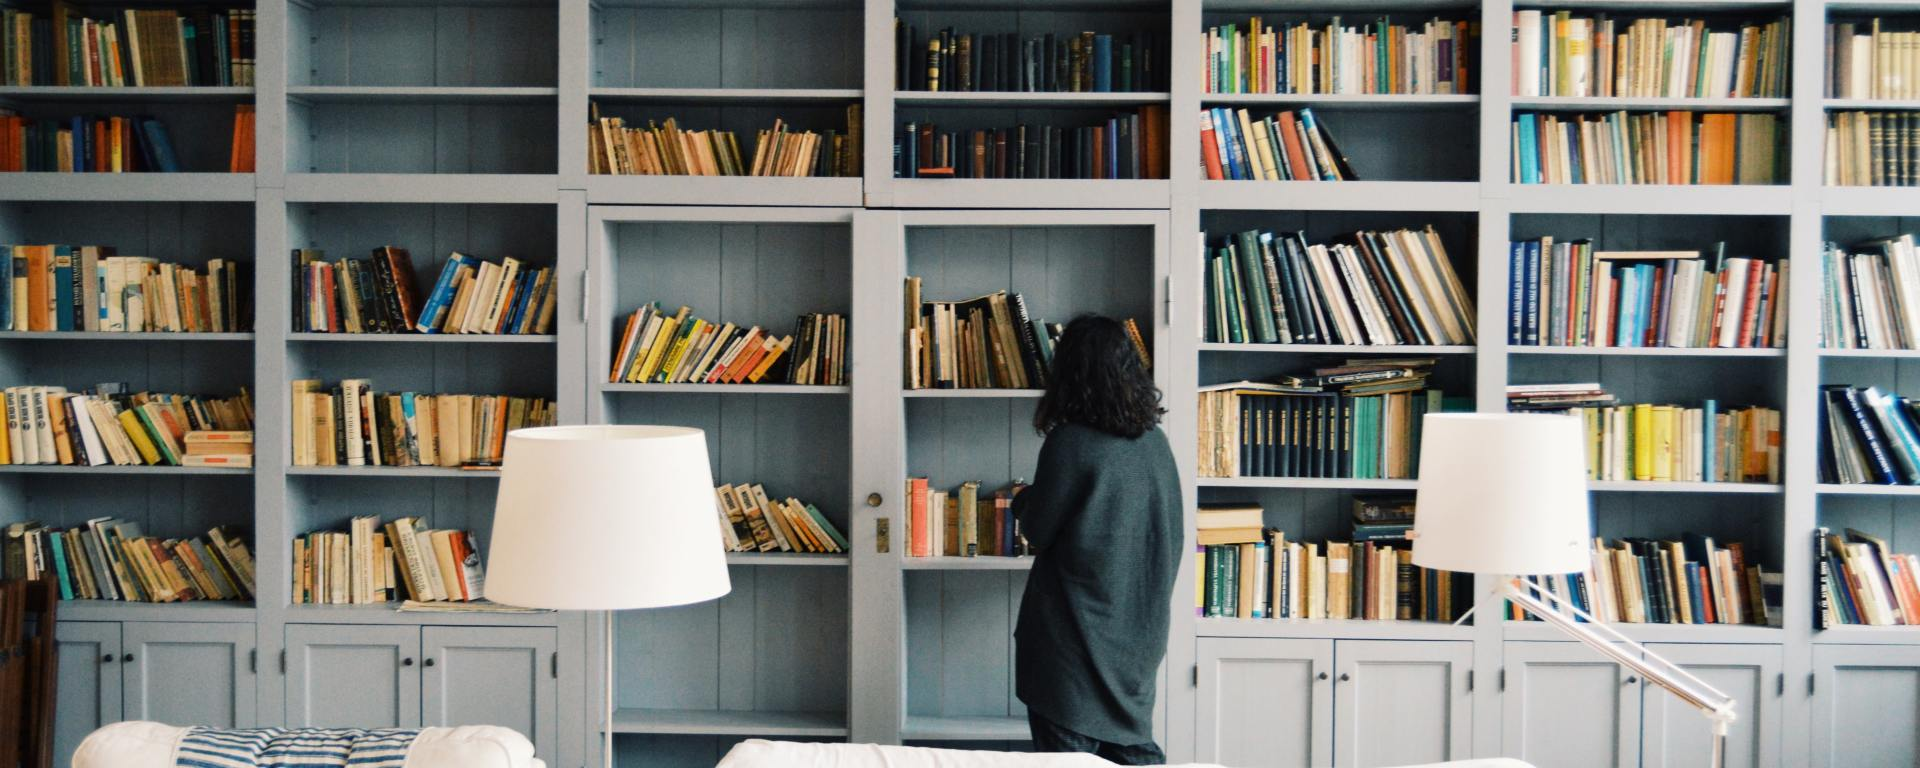 Girl looking at books on a book shelf